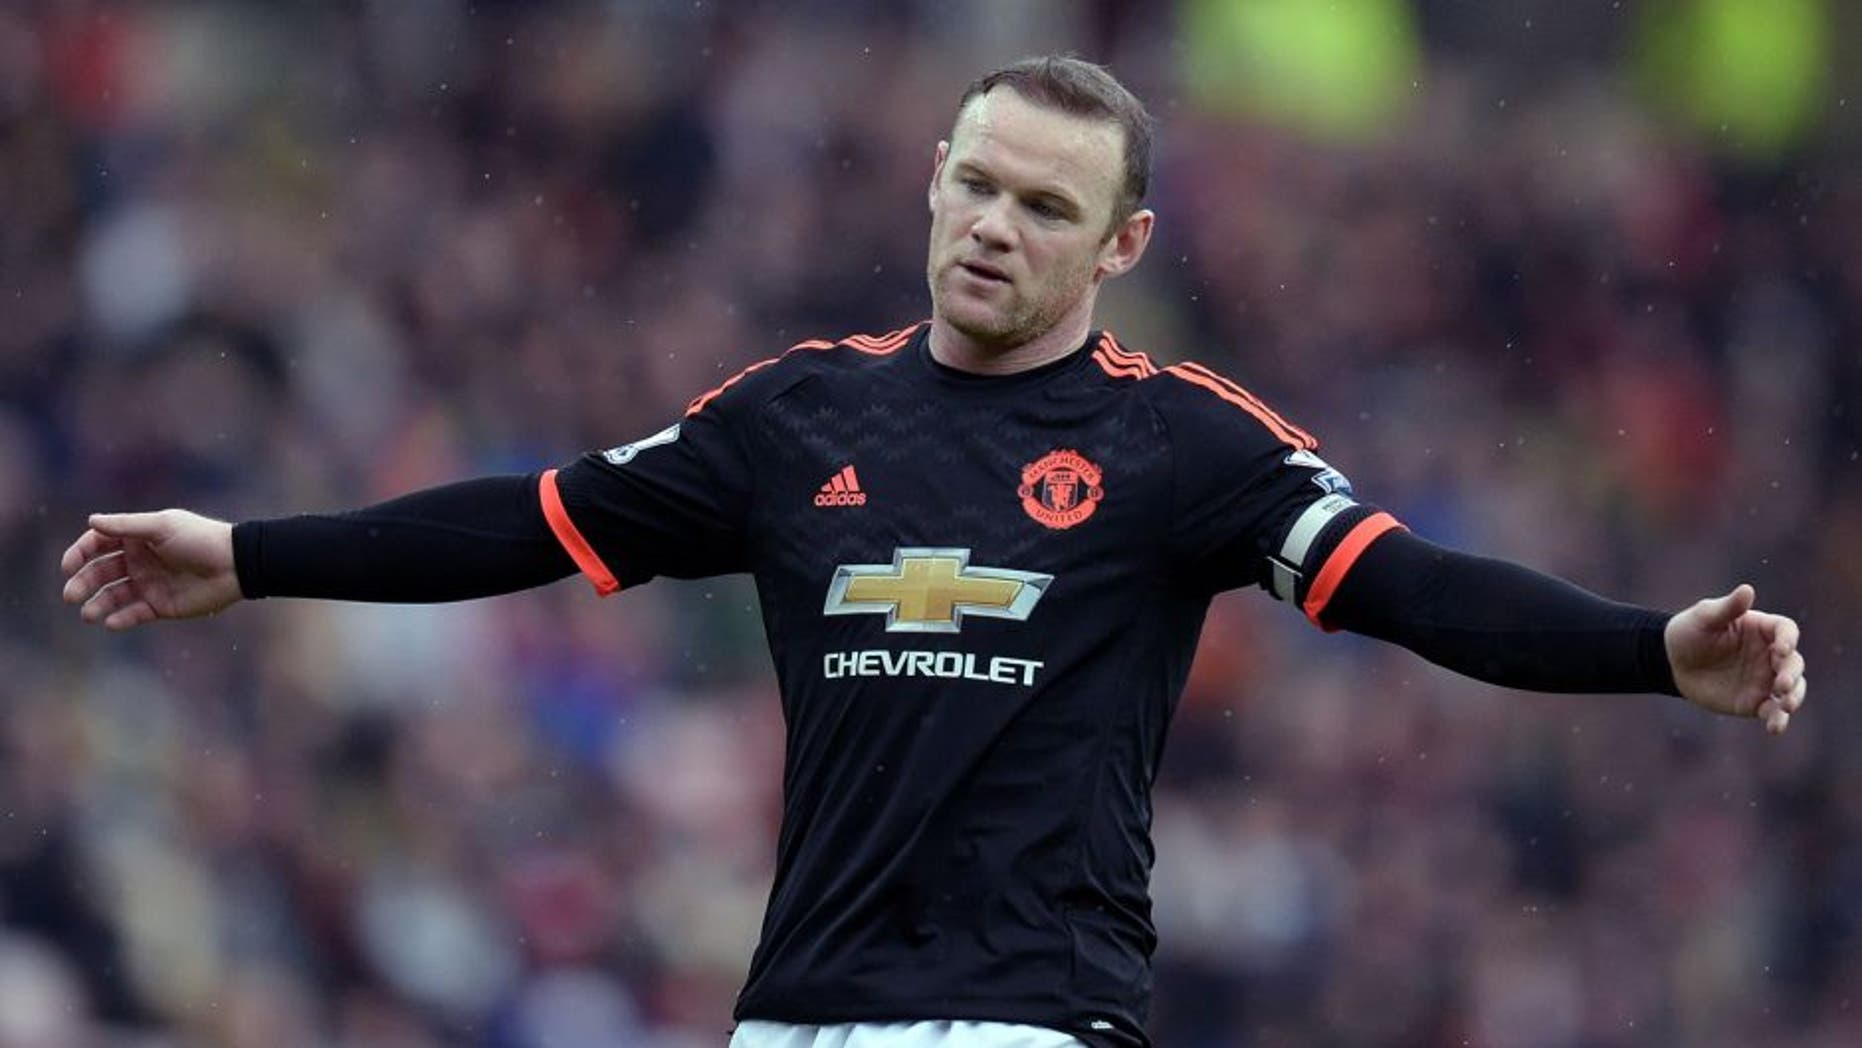 Manchester United's English striker Wayne Rooney reacts during the English Premier League football match between Sunderland and Manchester United at the Stadium of Light in Sunderland, northeast England on February 13, 2016. / AFP / OLI SCARFF / RESTRICTED TO EDITORIAL USE. No use with unauthorized audio, video, data, fixture lists, club/league logos or 'live' services. Online in-match use limited to 75 images, no video emulation. No use in betting, games or single club/league/player publications. / (Photo credit should read OLI SCARFF/AFP/Getty Images)